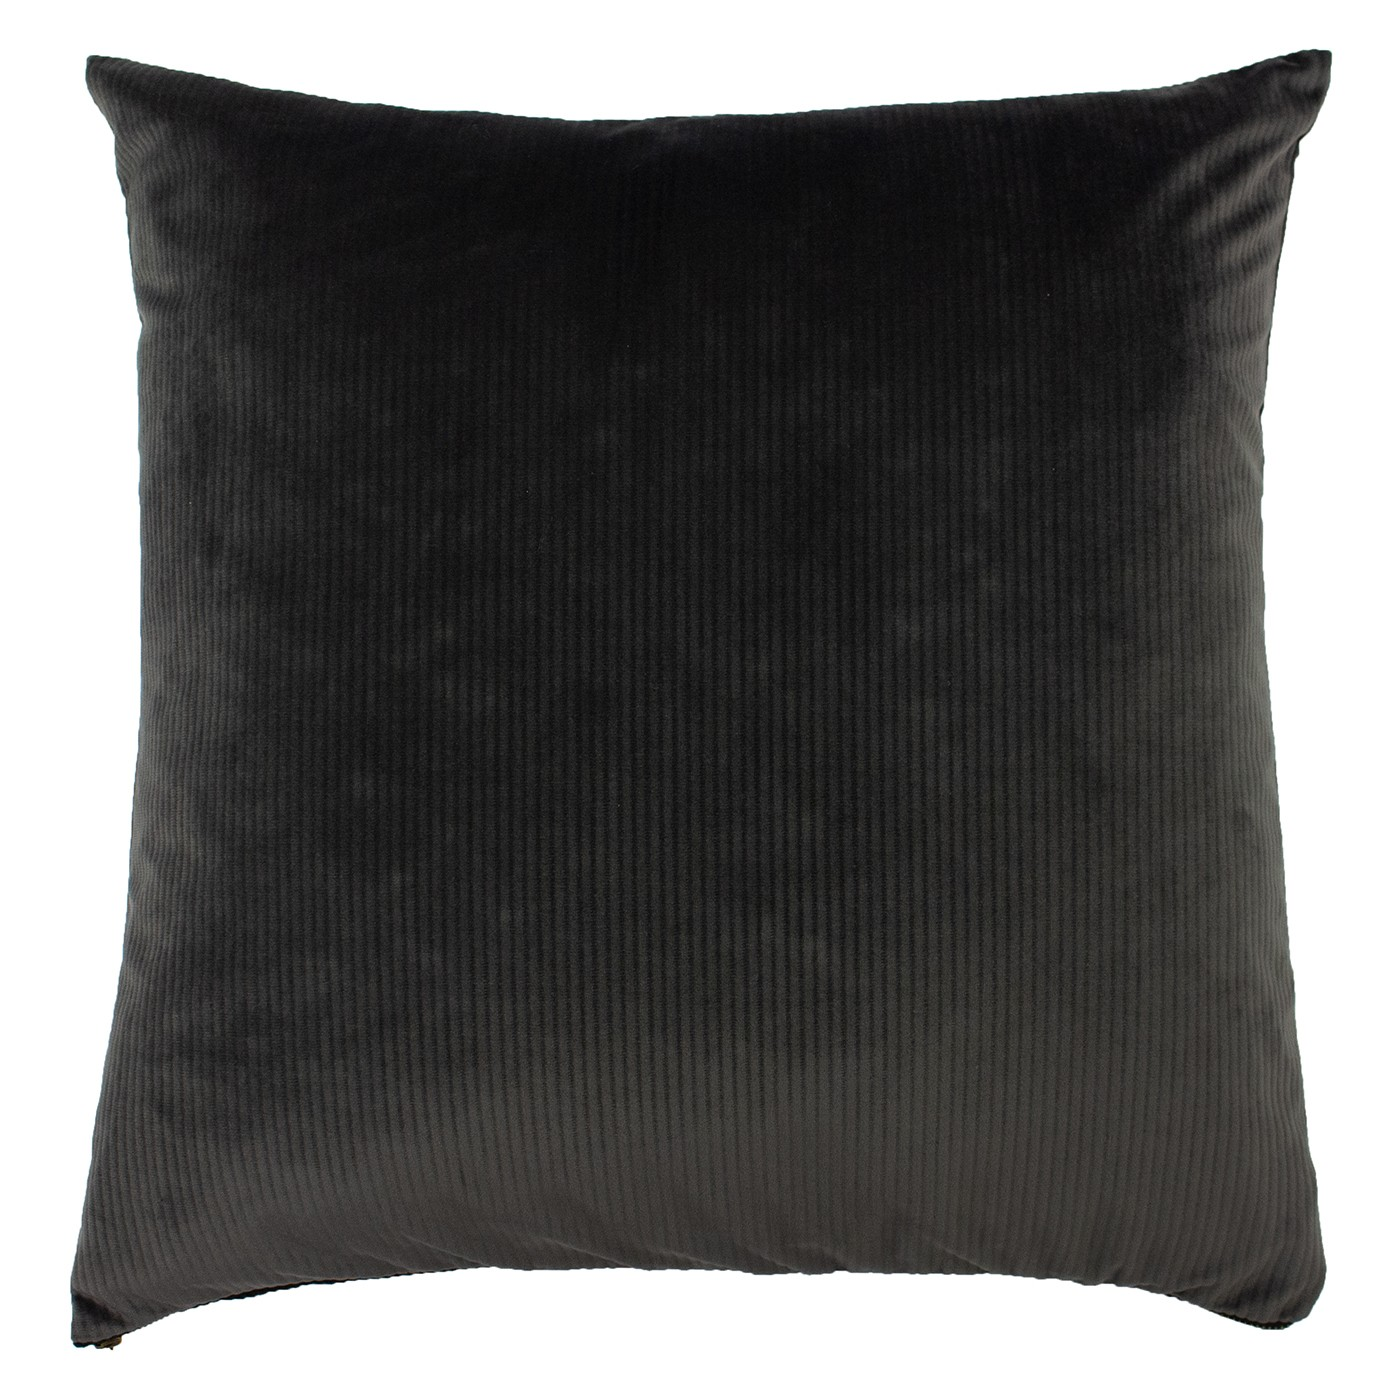 The Home Furnishings Company Aurora Grey Velvet Corduroy Cushion 45x45cms